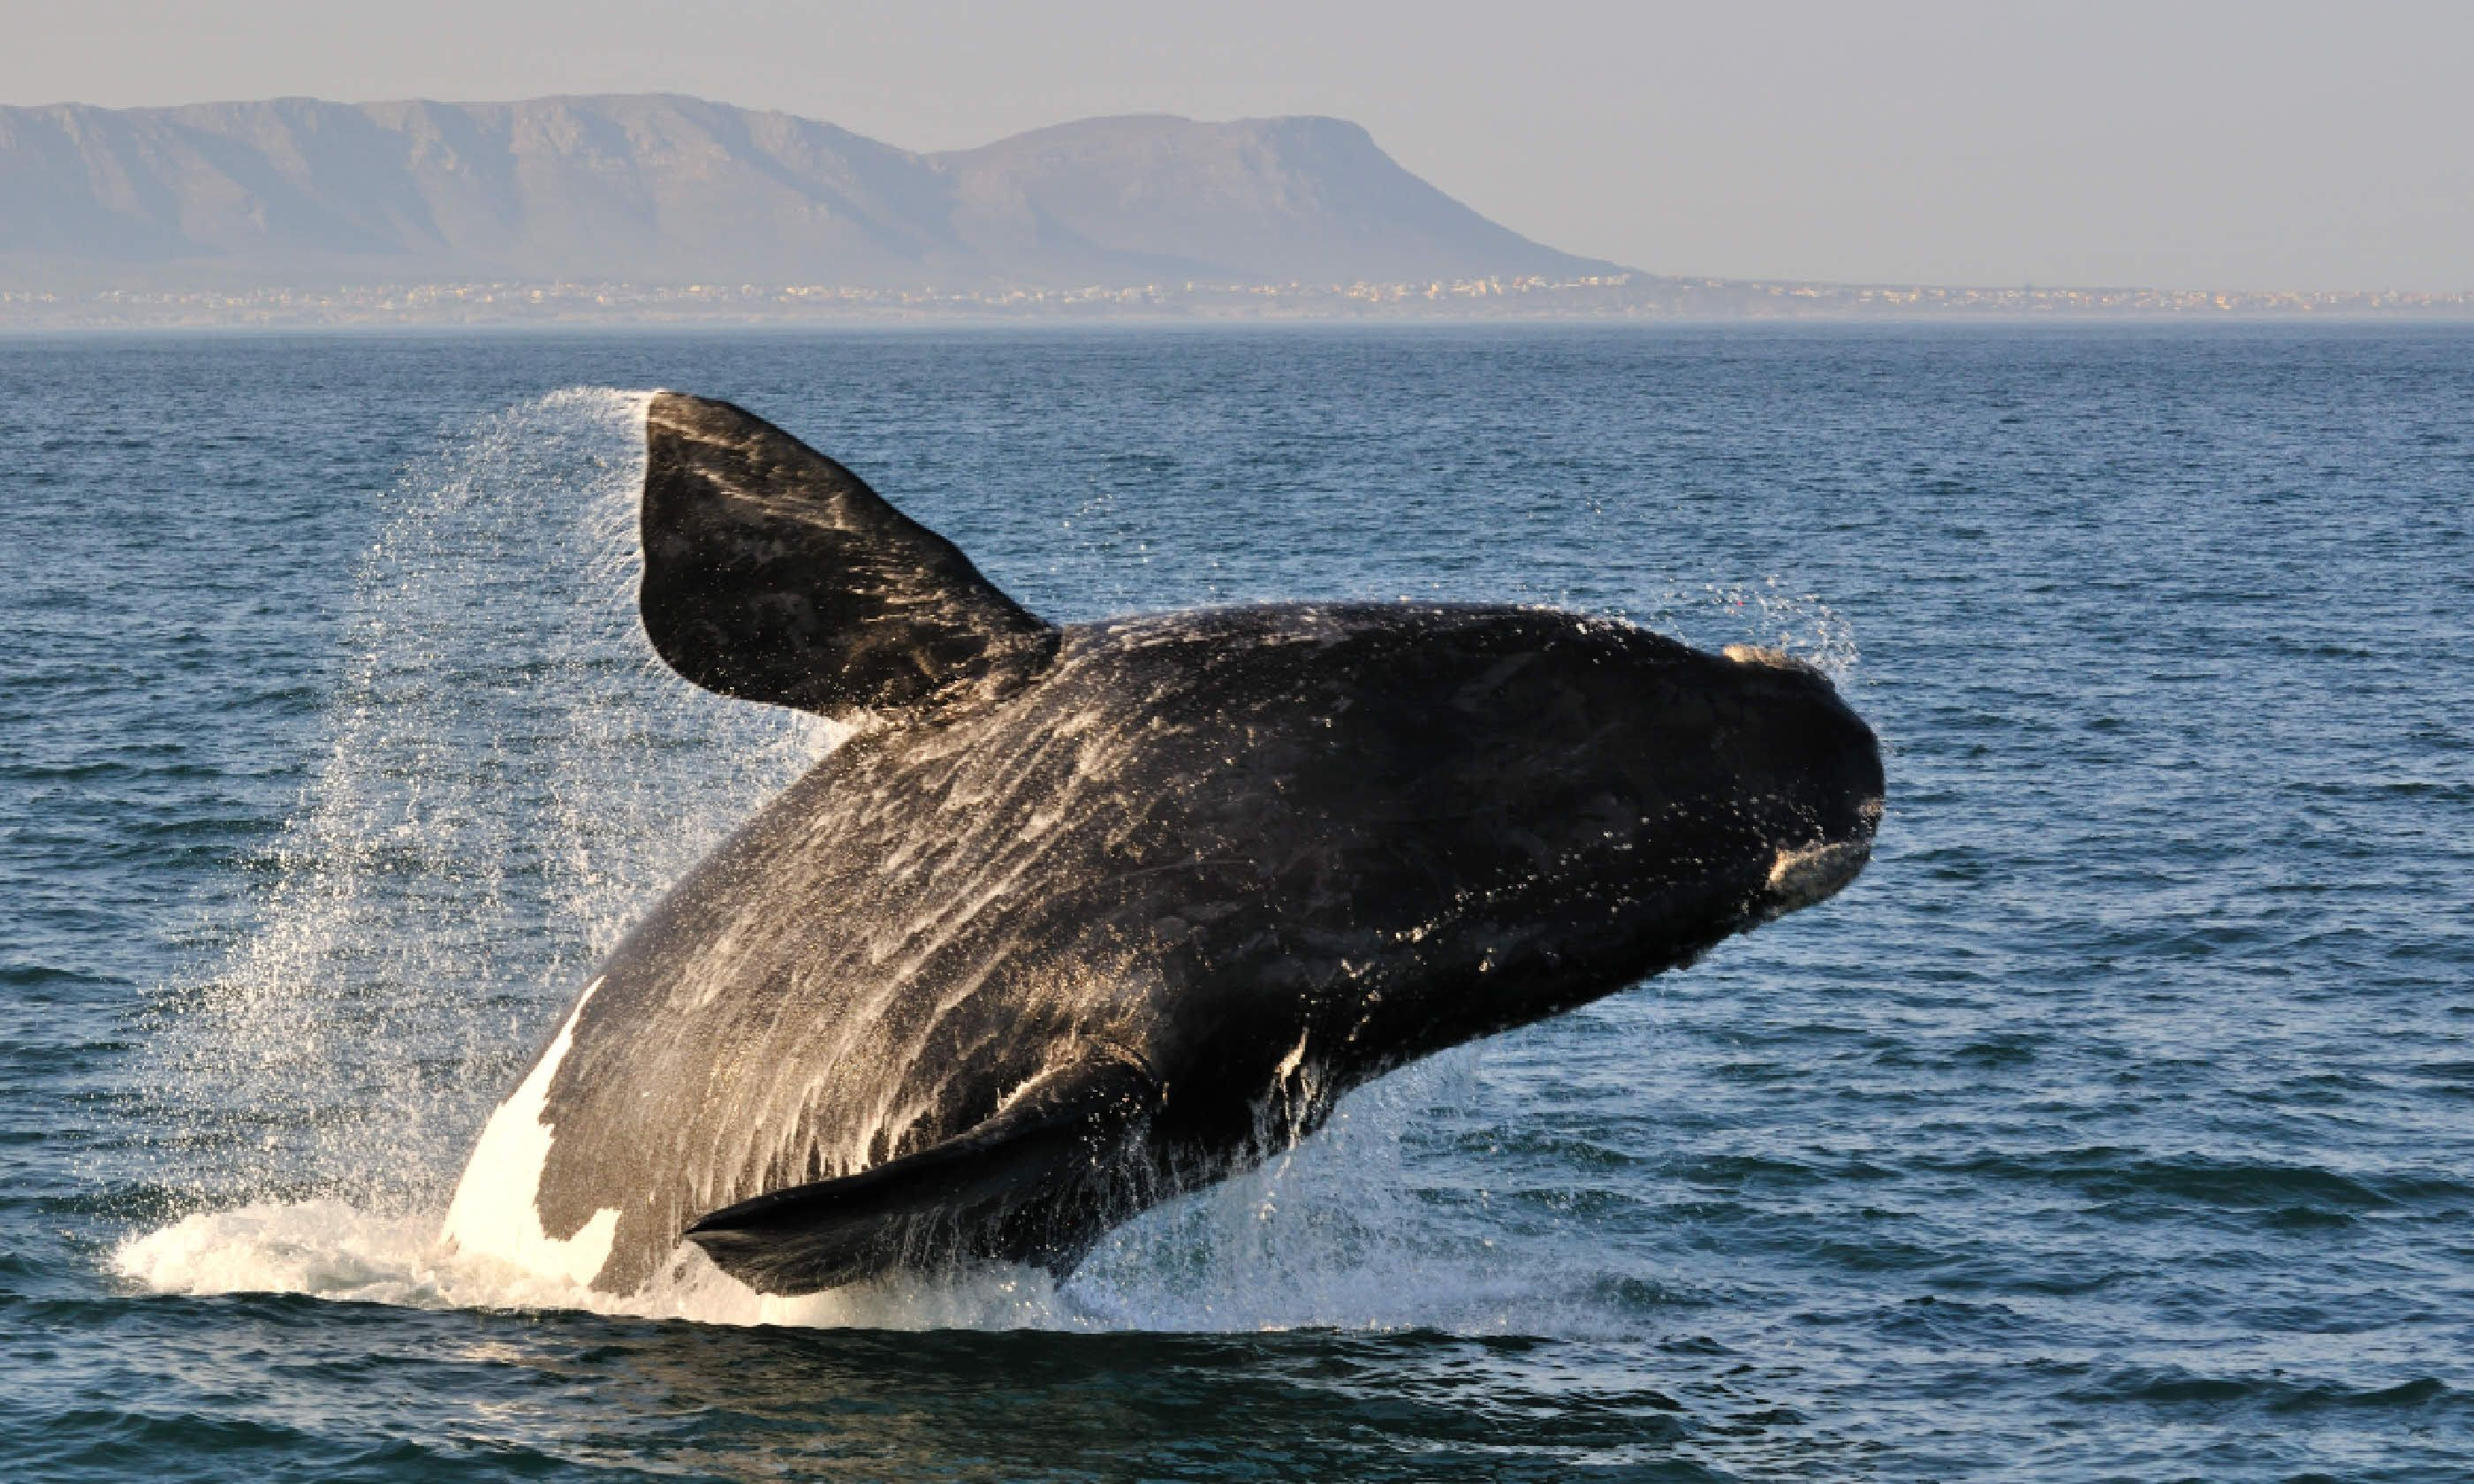 Whale breach in Hermanus, South Africa (Shutterstock)